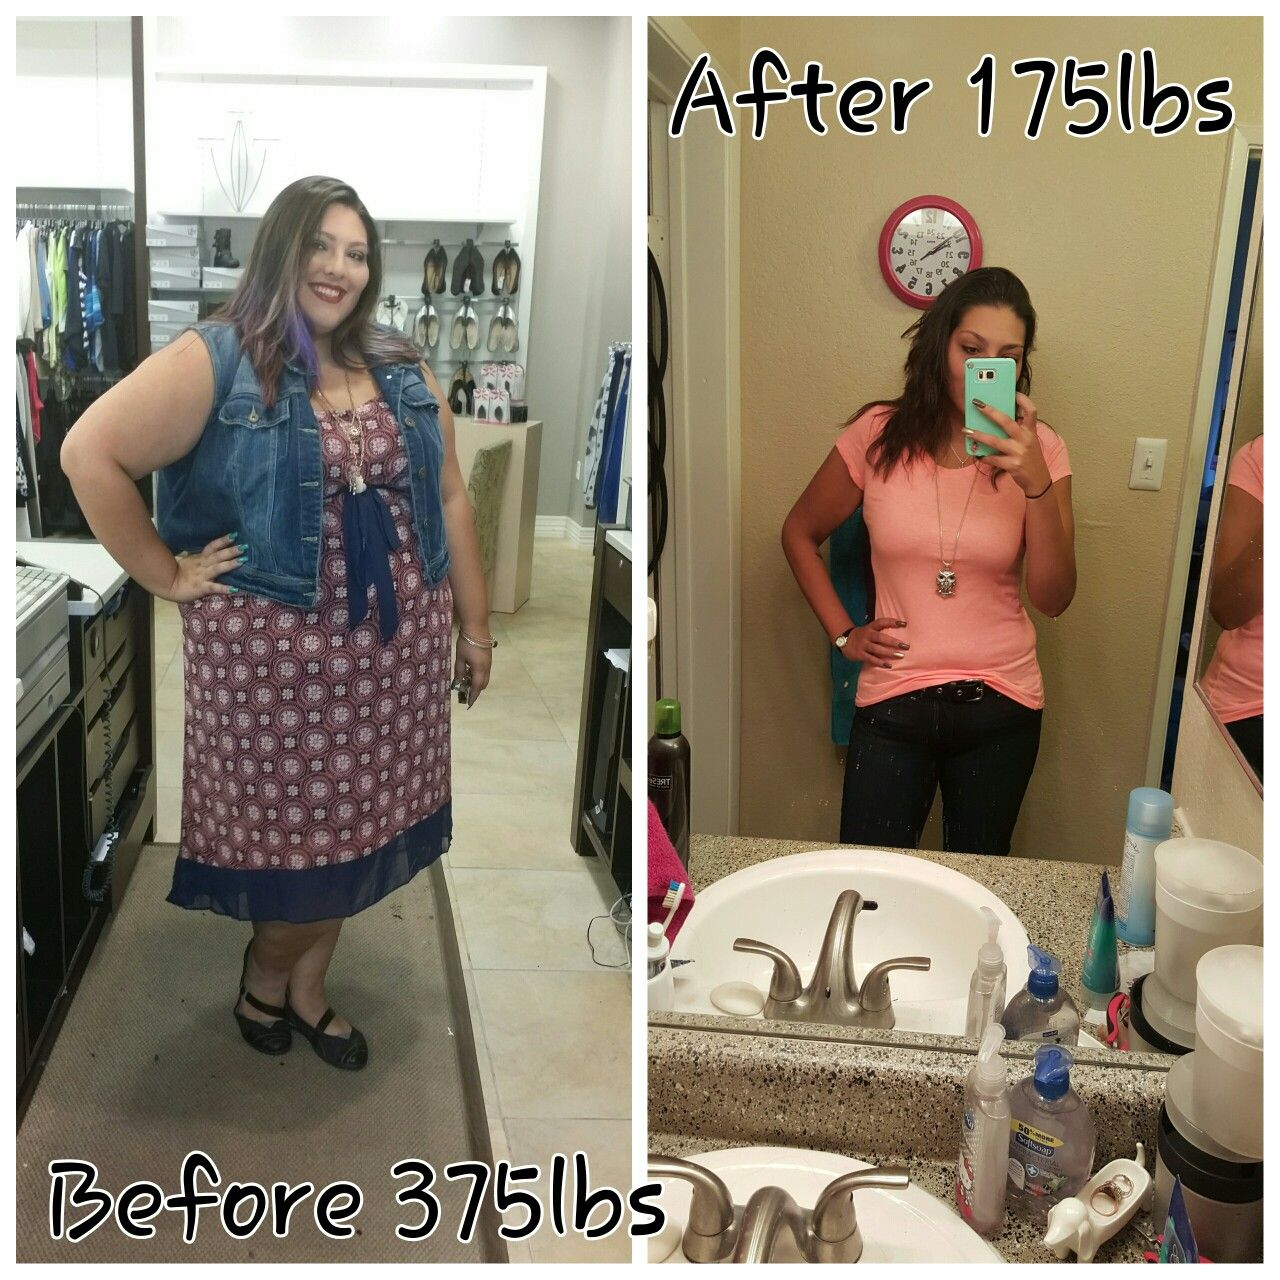 60 day water fast weight loss image 13